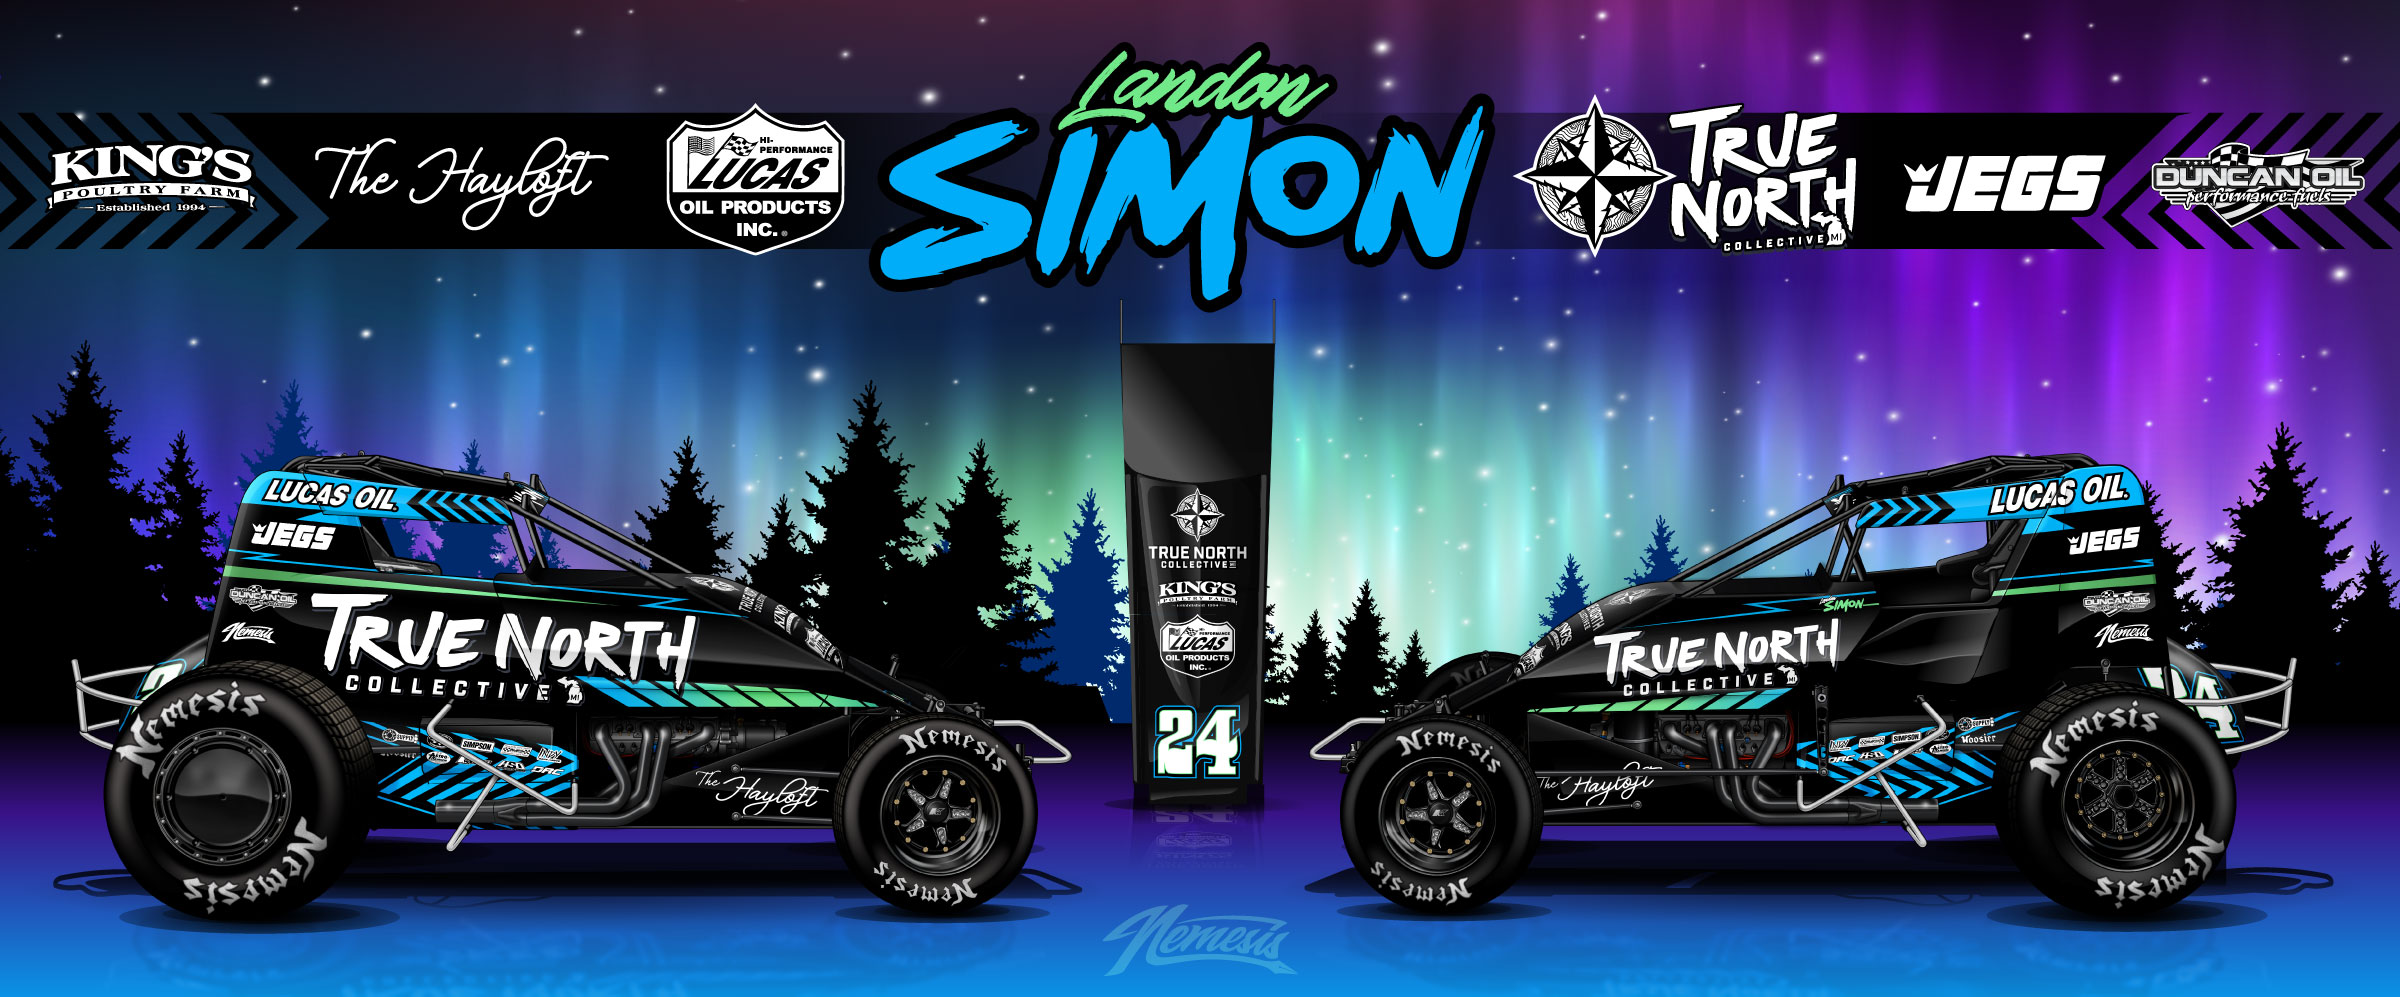 LANDON SIMON INKS DEAL WITH TRUE NORTH COLLECTIVE